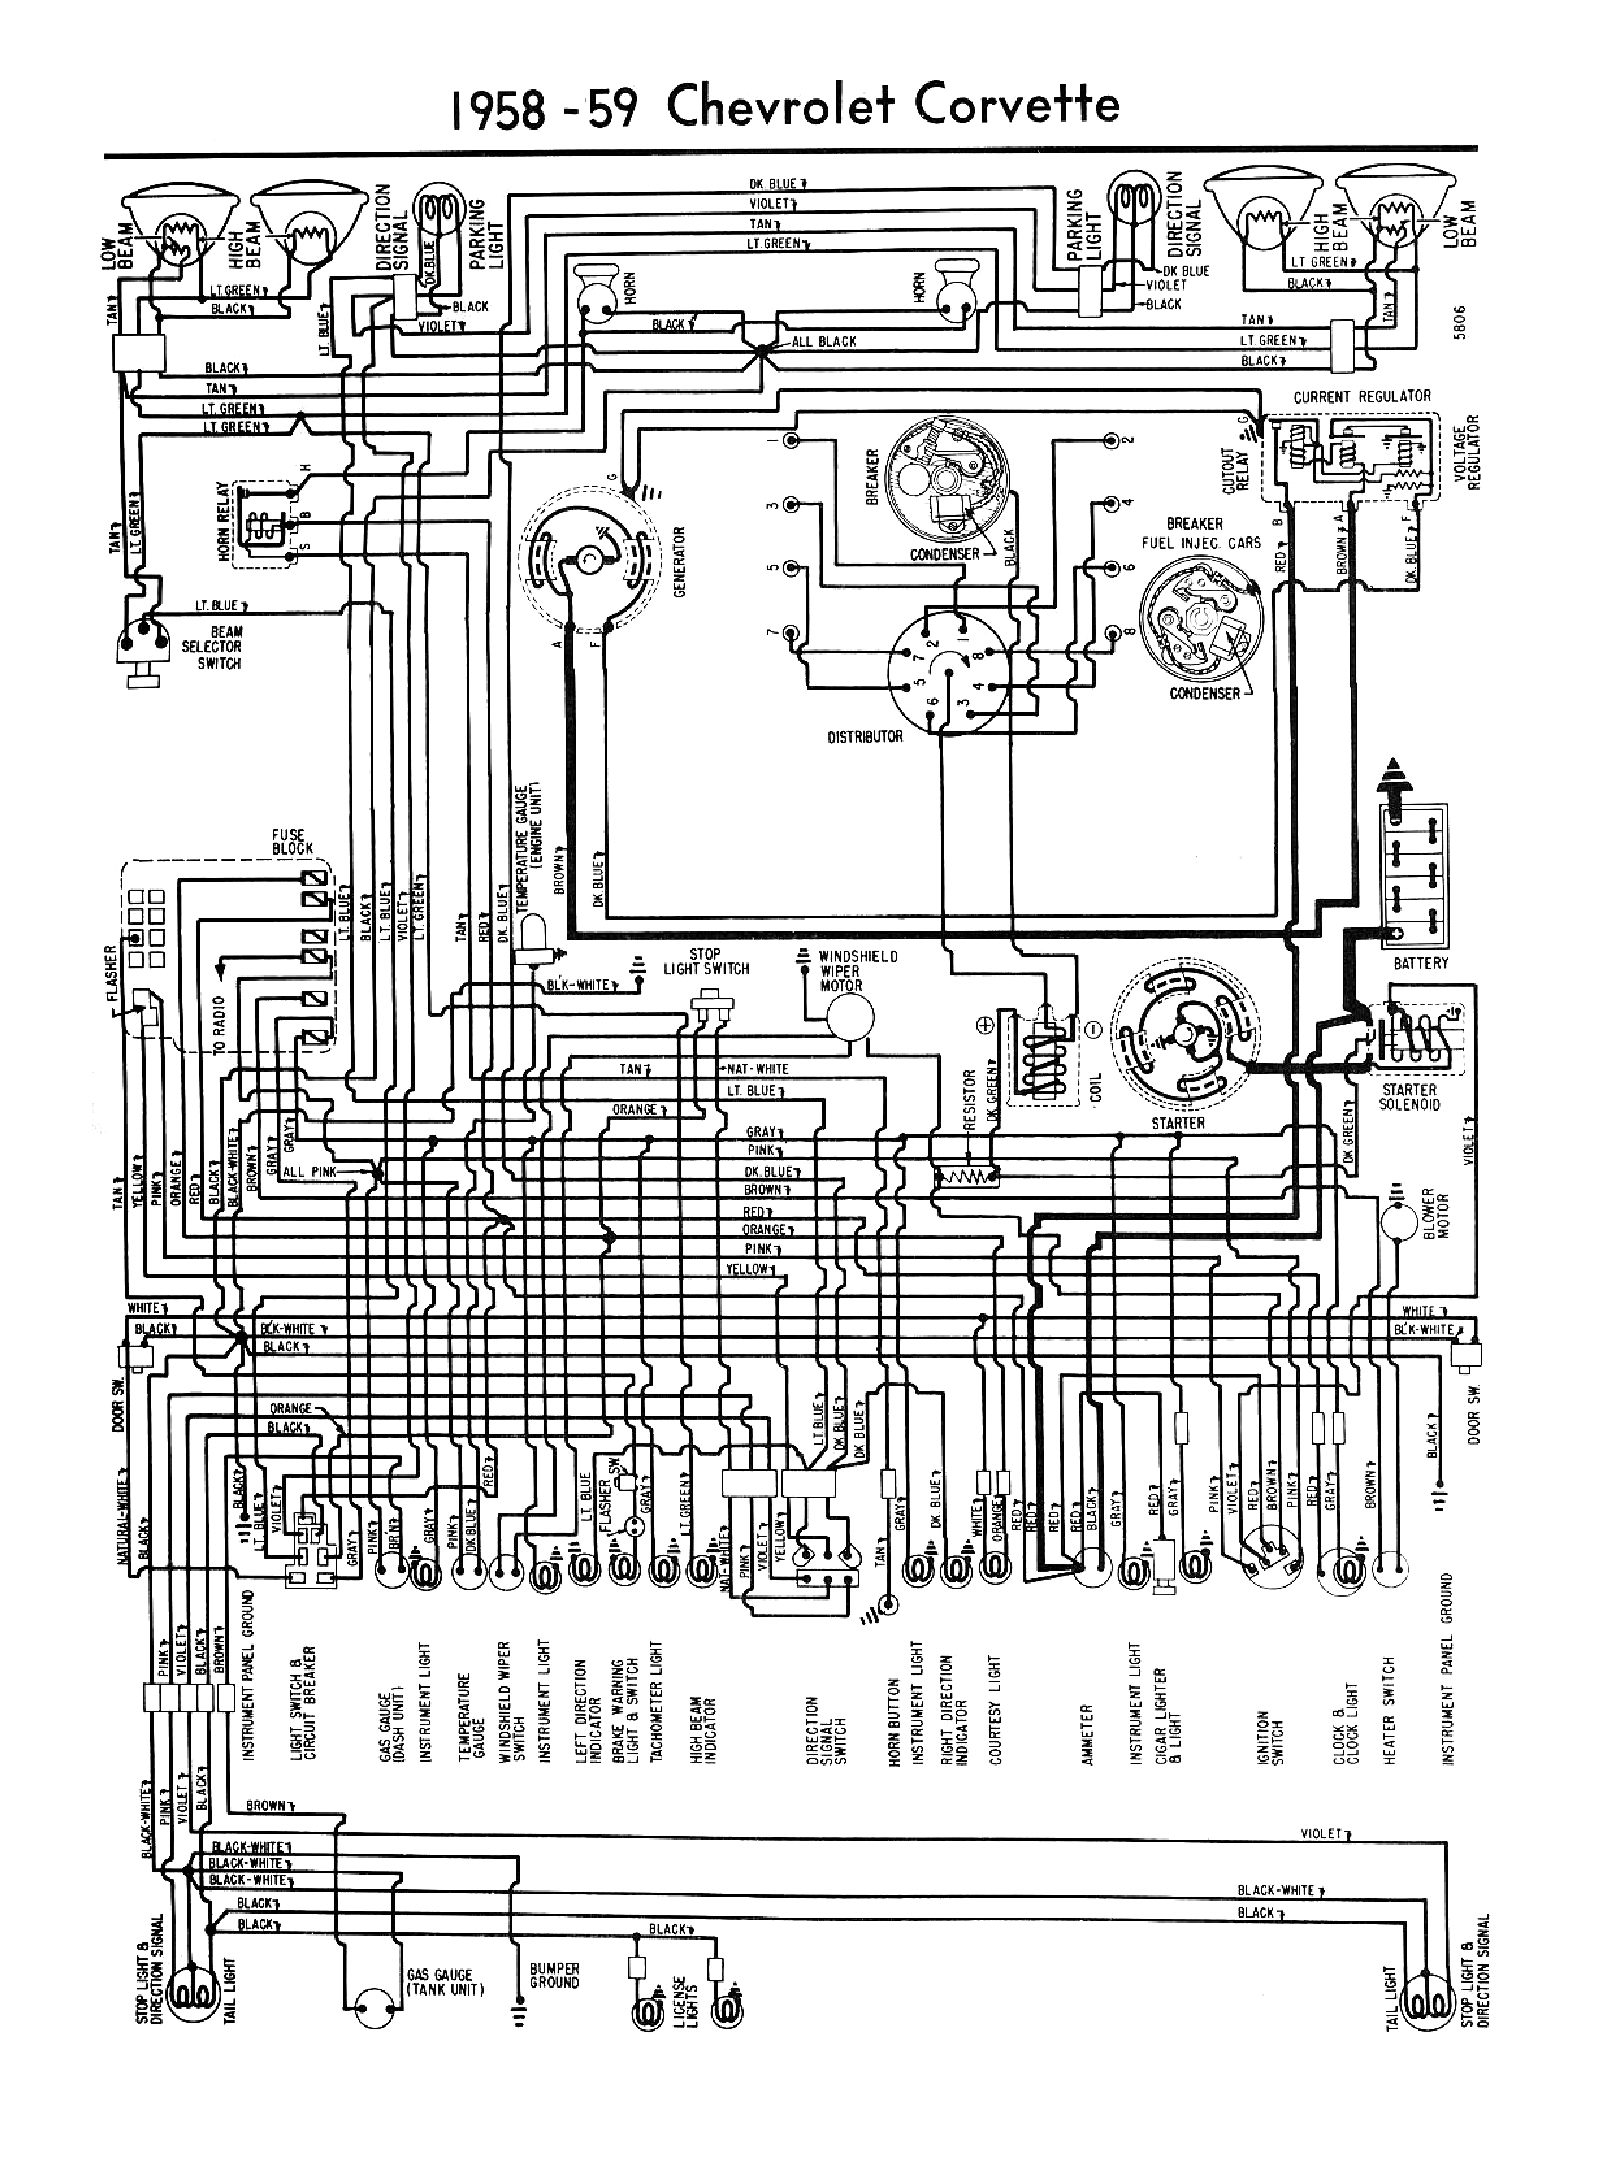 1960 corvette wiring diagram - wiring diagram cup-upgrade-a -  cup-upgrade-a.agriturismoduemadonne.it  agriturismo due madonne